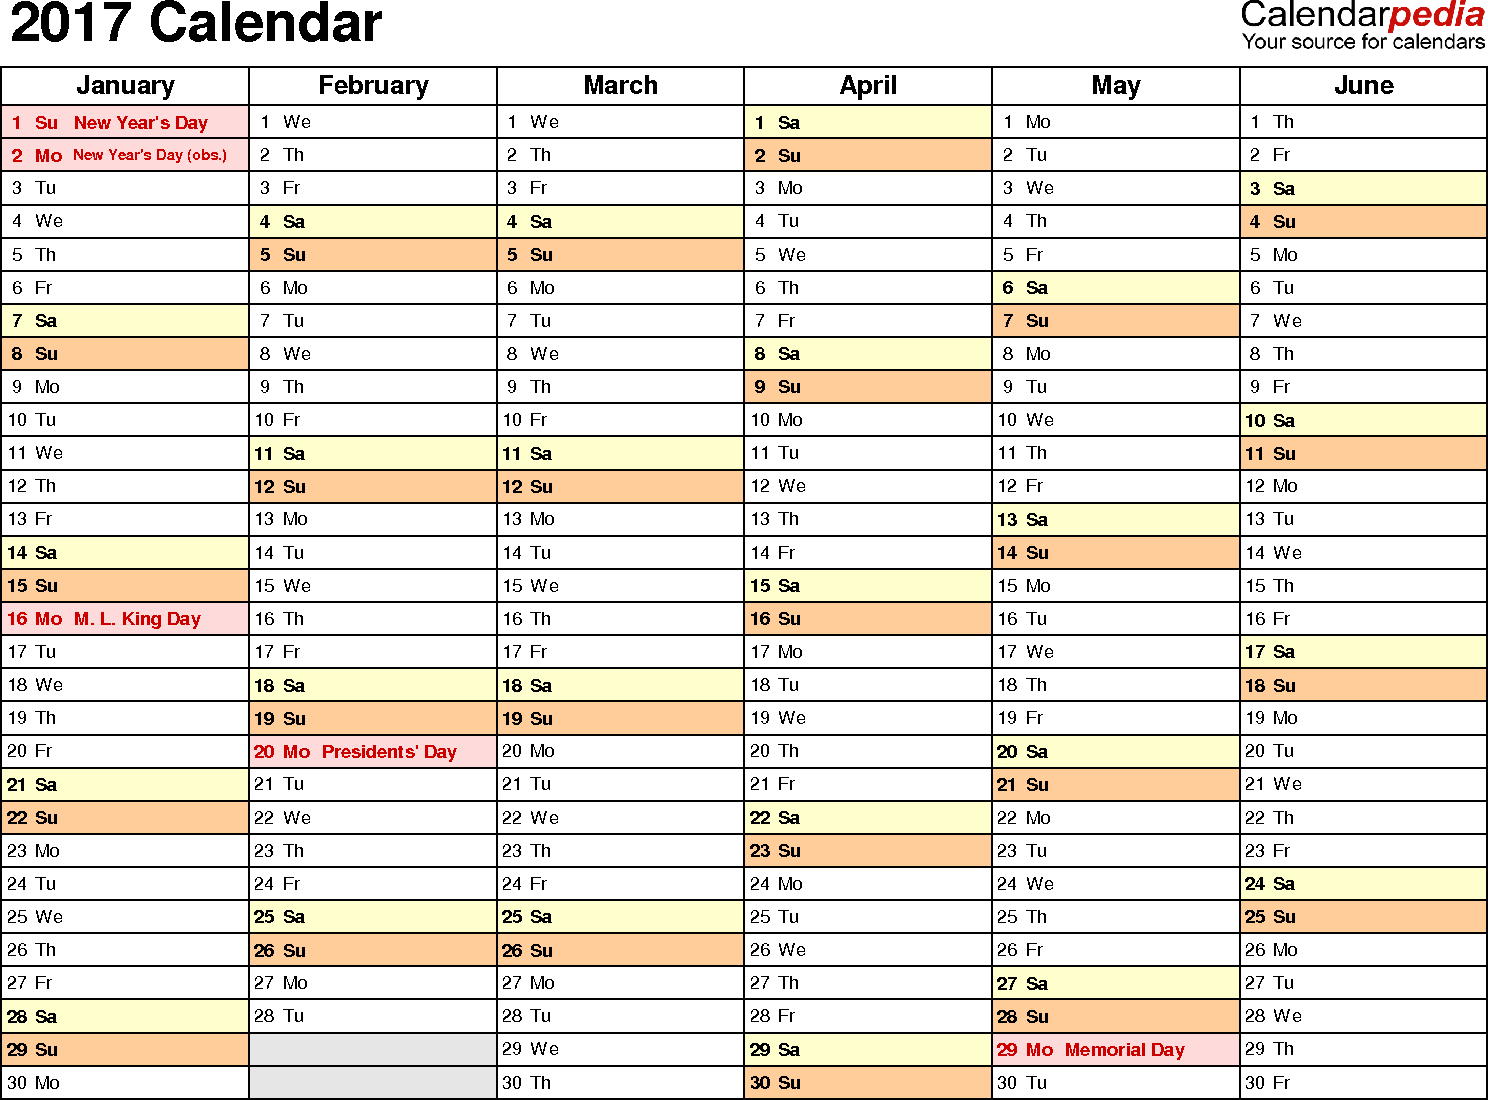 Ediblewildsus  Inspiring  Calendar  Download  Free Printable Excel Templates Xls With Foxy Template   Calendar For Excel Months Horizontally  Pages Landscape Orientation With Attractive Easy Excel Formulas Also Excel For Apple Mac In Addition Create Line Chart In Excel And Switch Rows And Columns Excel As Well As Excel Shortcut Insert Column Additionally Excel Sqrt From Calendarpediacom With Ediblewildsus  Foxy  Calendar  Download  Free Printable Excel Templates Xls With Attractive Template   Calendar For Excel Months Horizontally  Pages Landscape Orientation And Inspiring Easy Excel Formulas Also Excel For Apple Mac In Addition Create Line Chart In Excel From Calendarpediacom